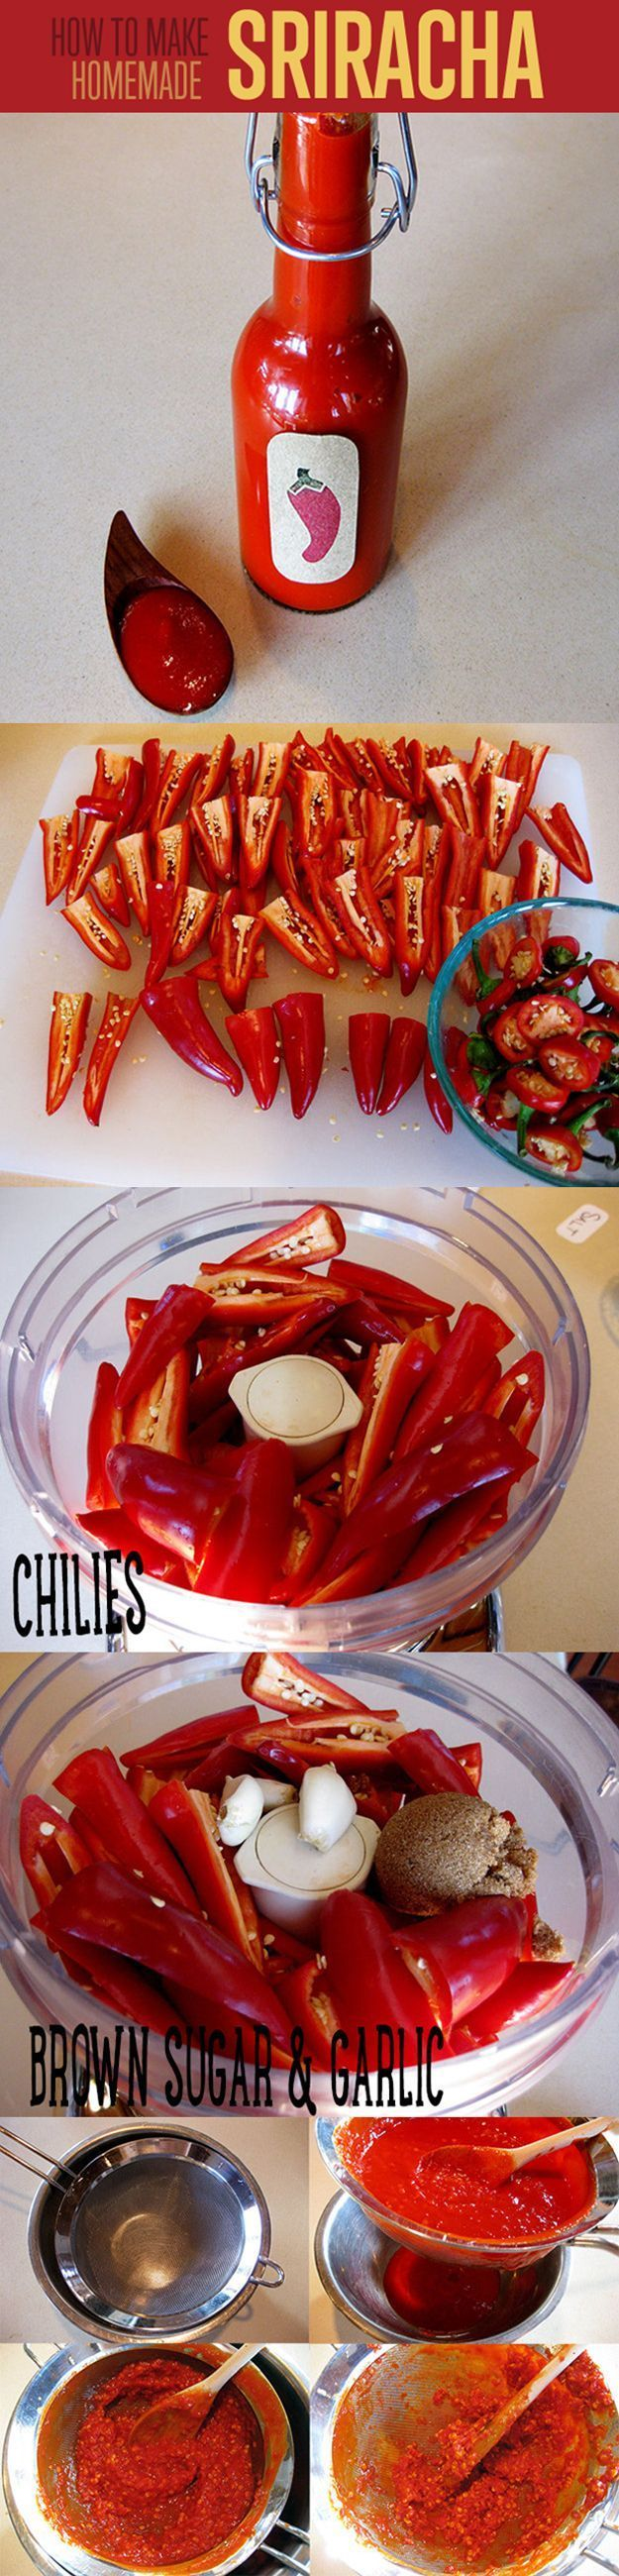 How to Make Hot Sauce | Easy Homemade Sriracha Hot Sauce Recipe by DIY Ready at  http://diyready.com/top-14-hot-sauce-recipes/